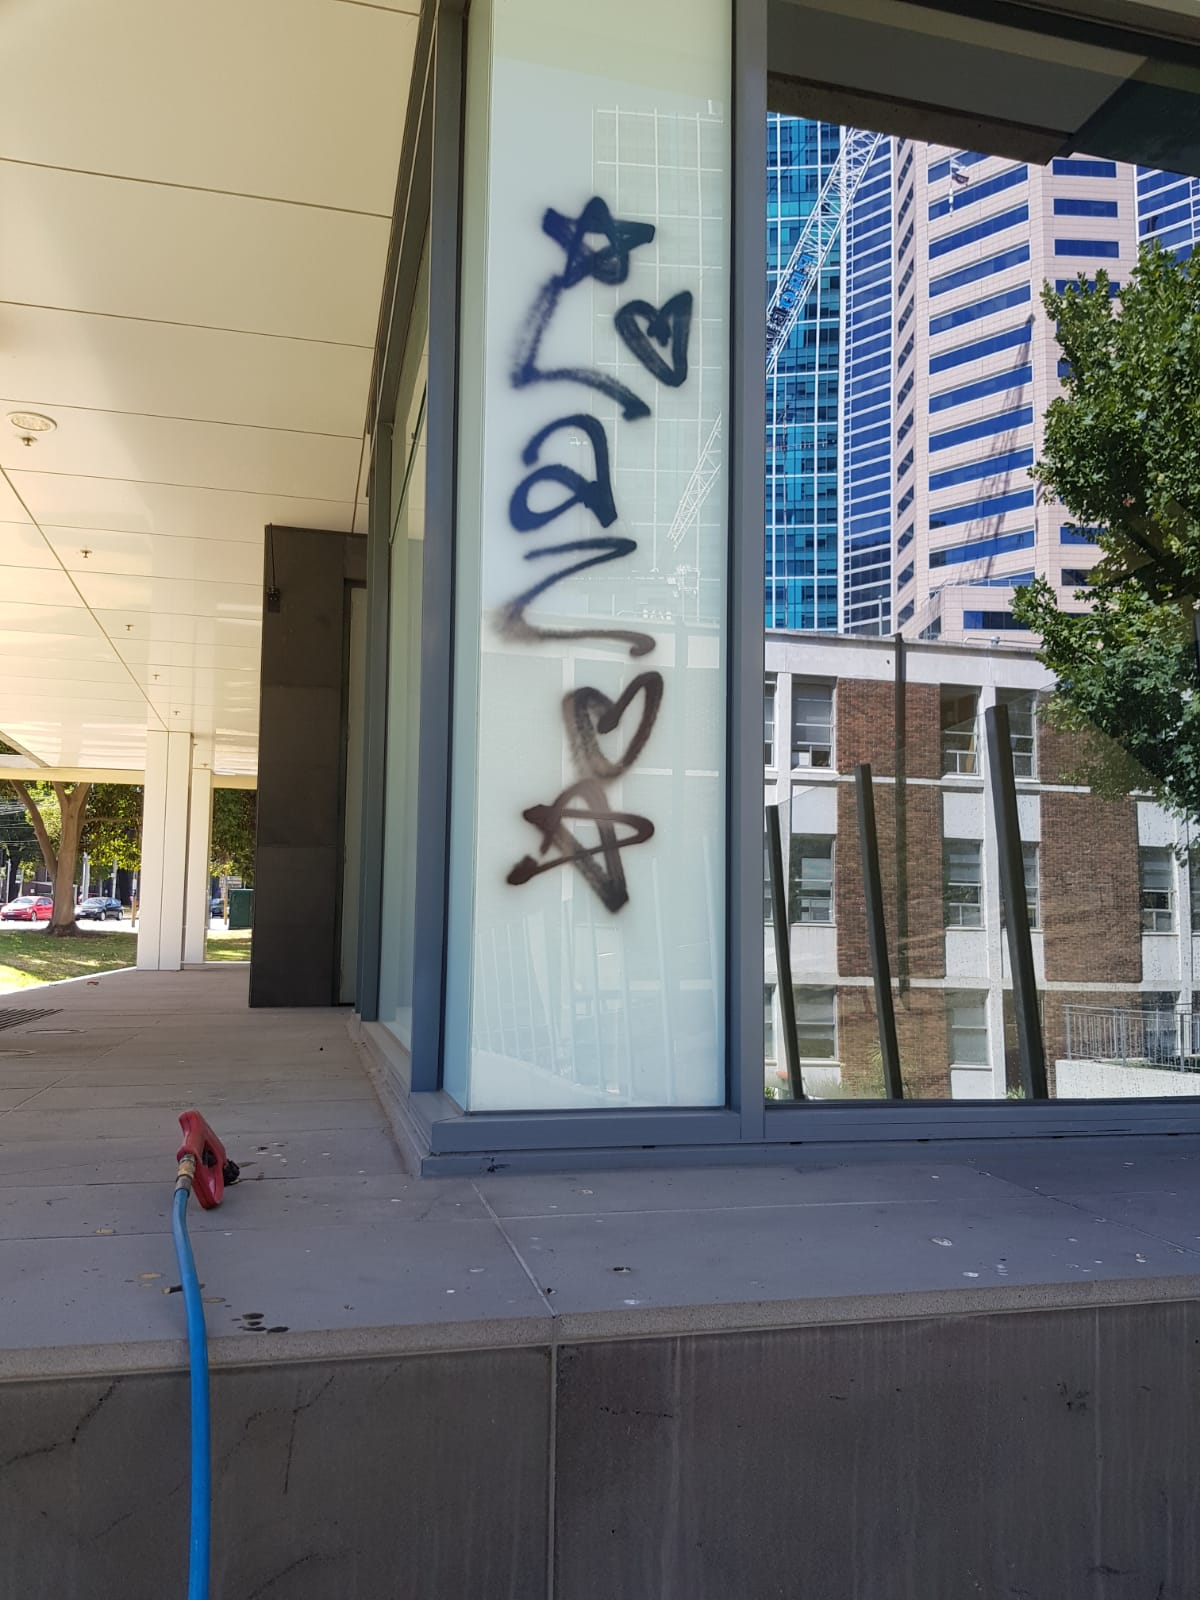 Royal College of Surgeons Graffiti removal Melbourne